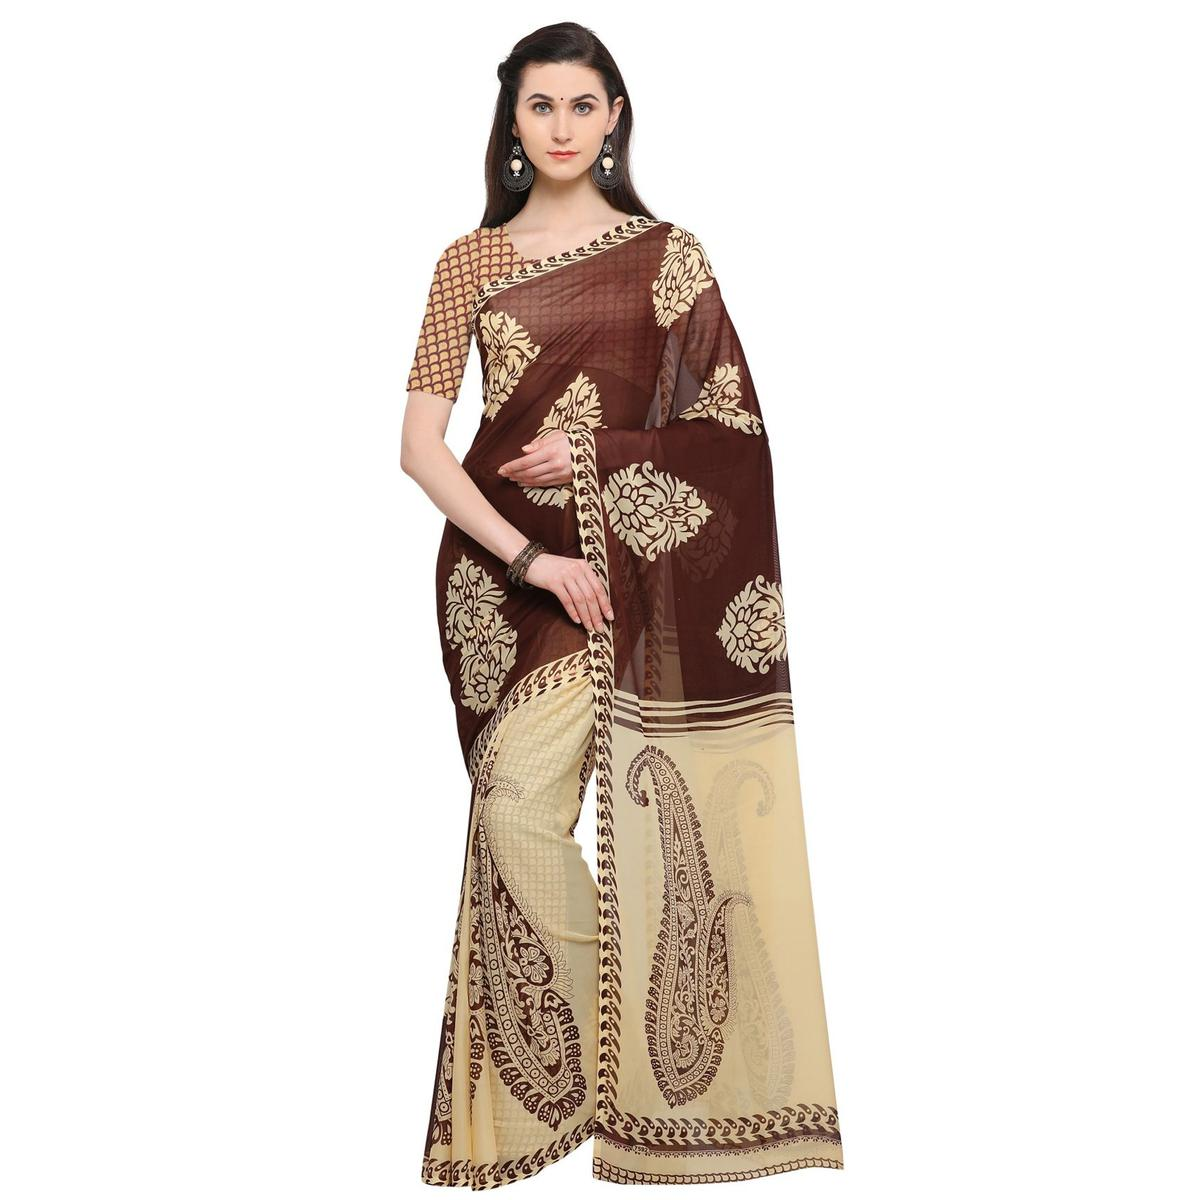 Stunning Beige-Brown Colored Casual Wear Printed Georgette Saree